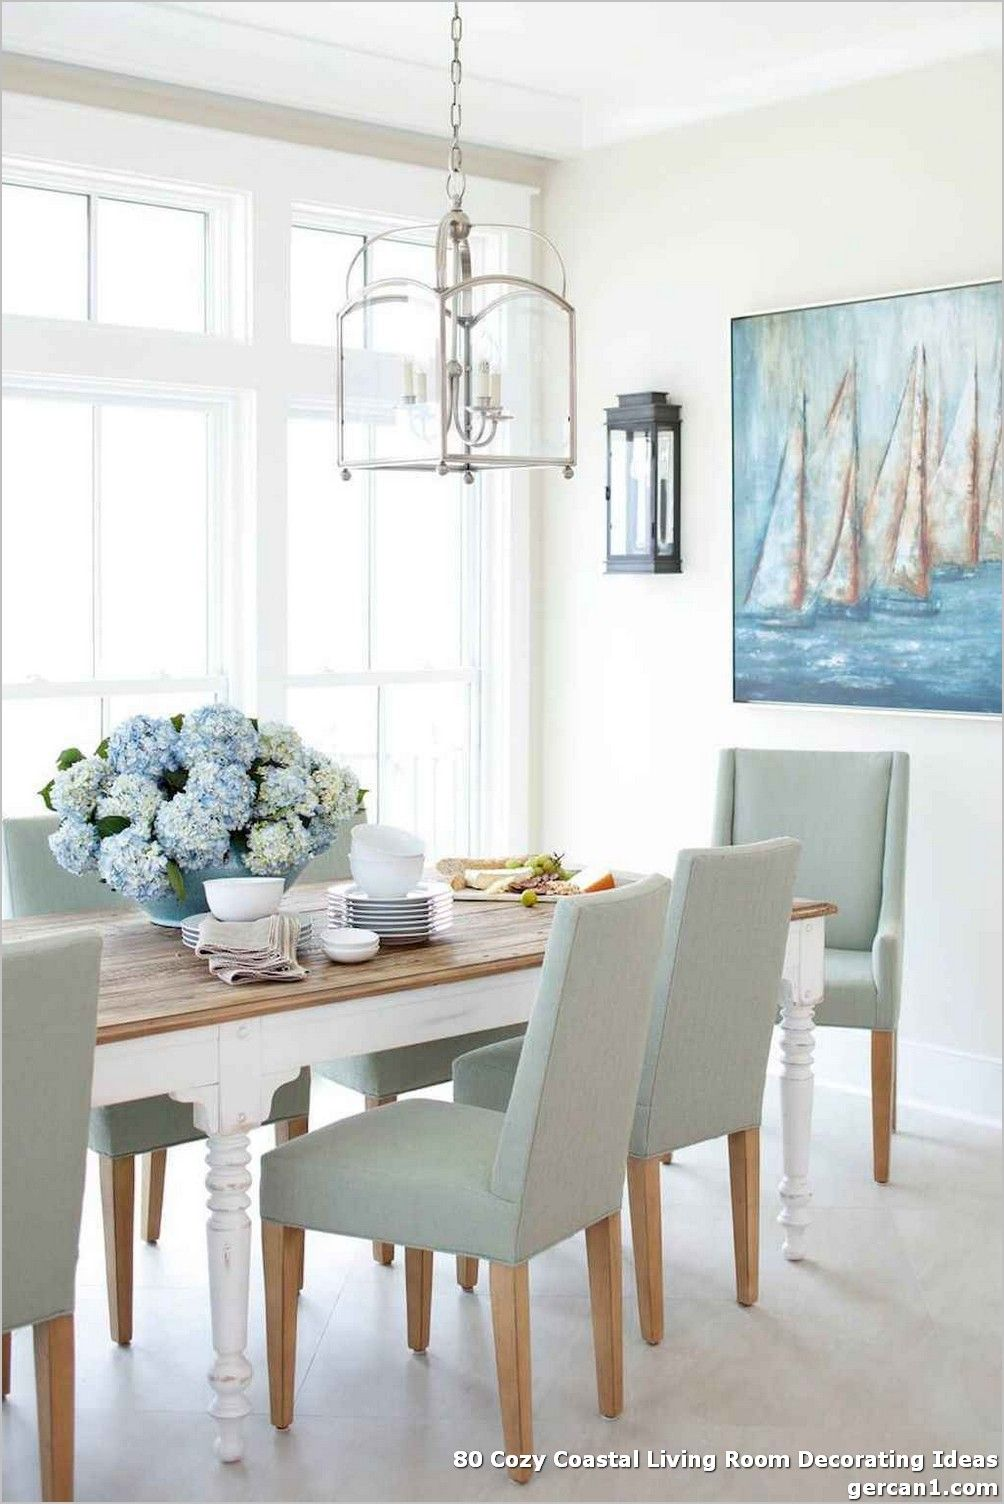 80 Cozy Coastal Living Room Decorating Ideas The Ocean Has Essentially The With Images Dining Room Design Modern Coastal Dining Room Table Beach House Interior Design